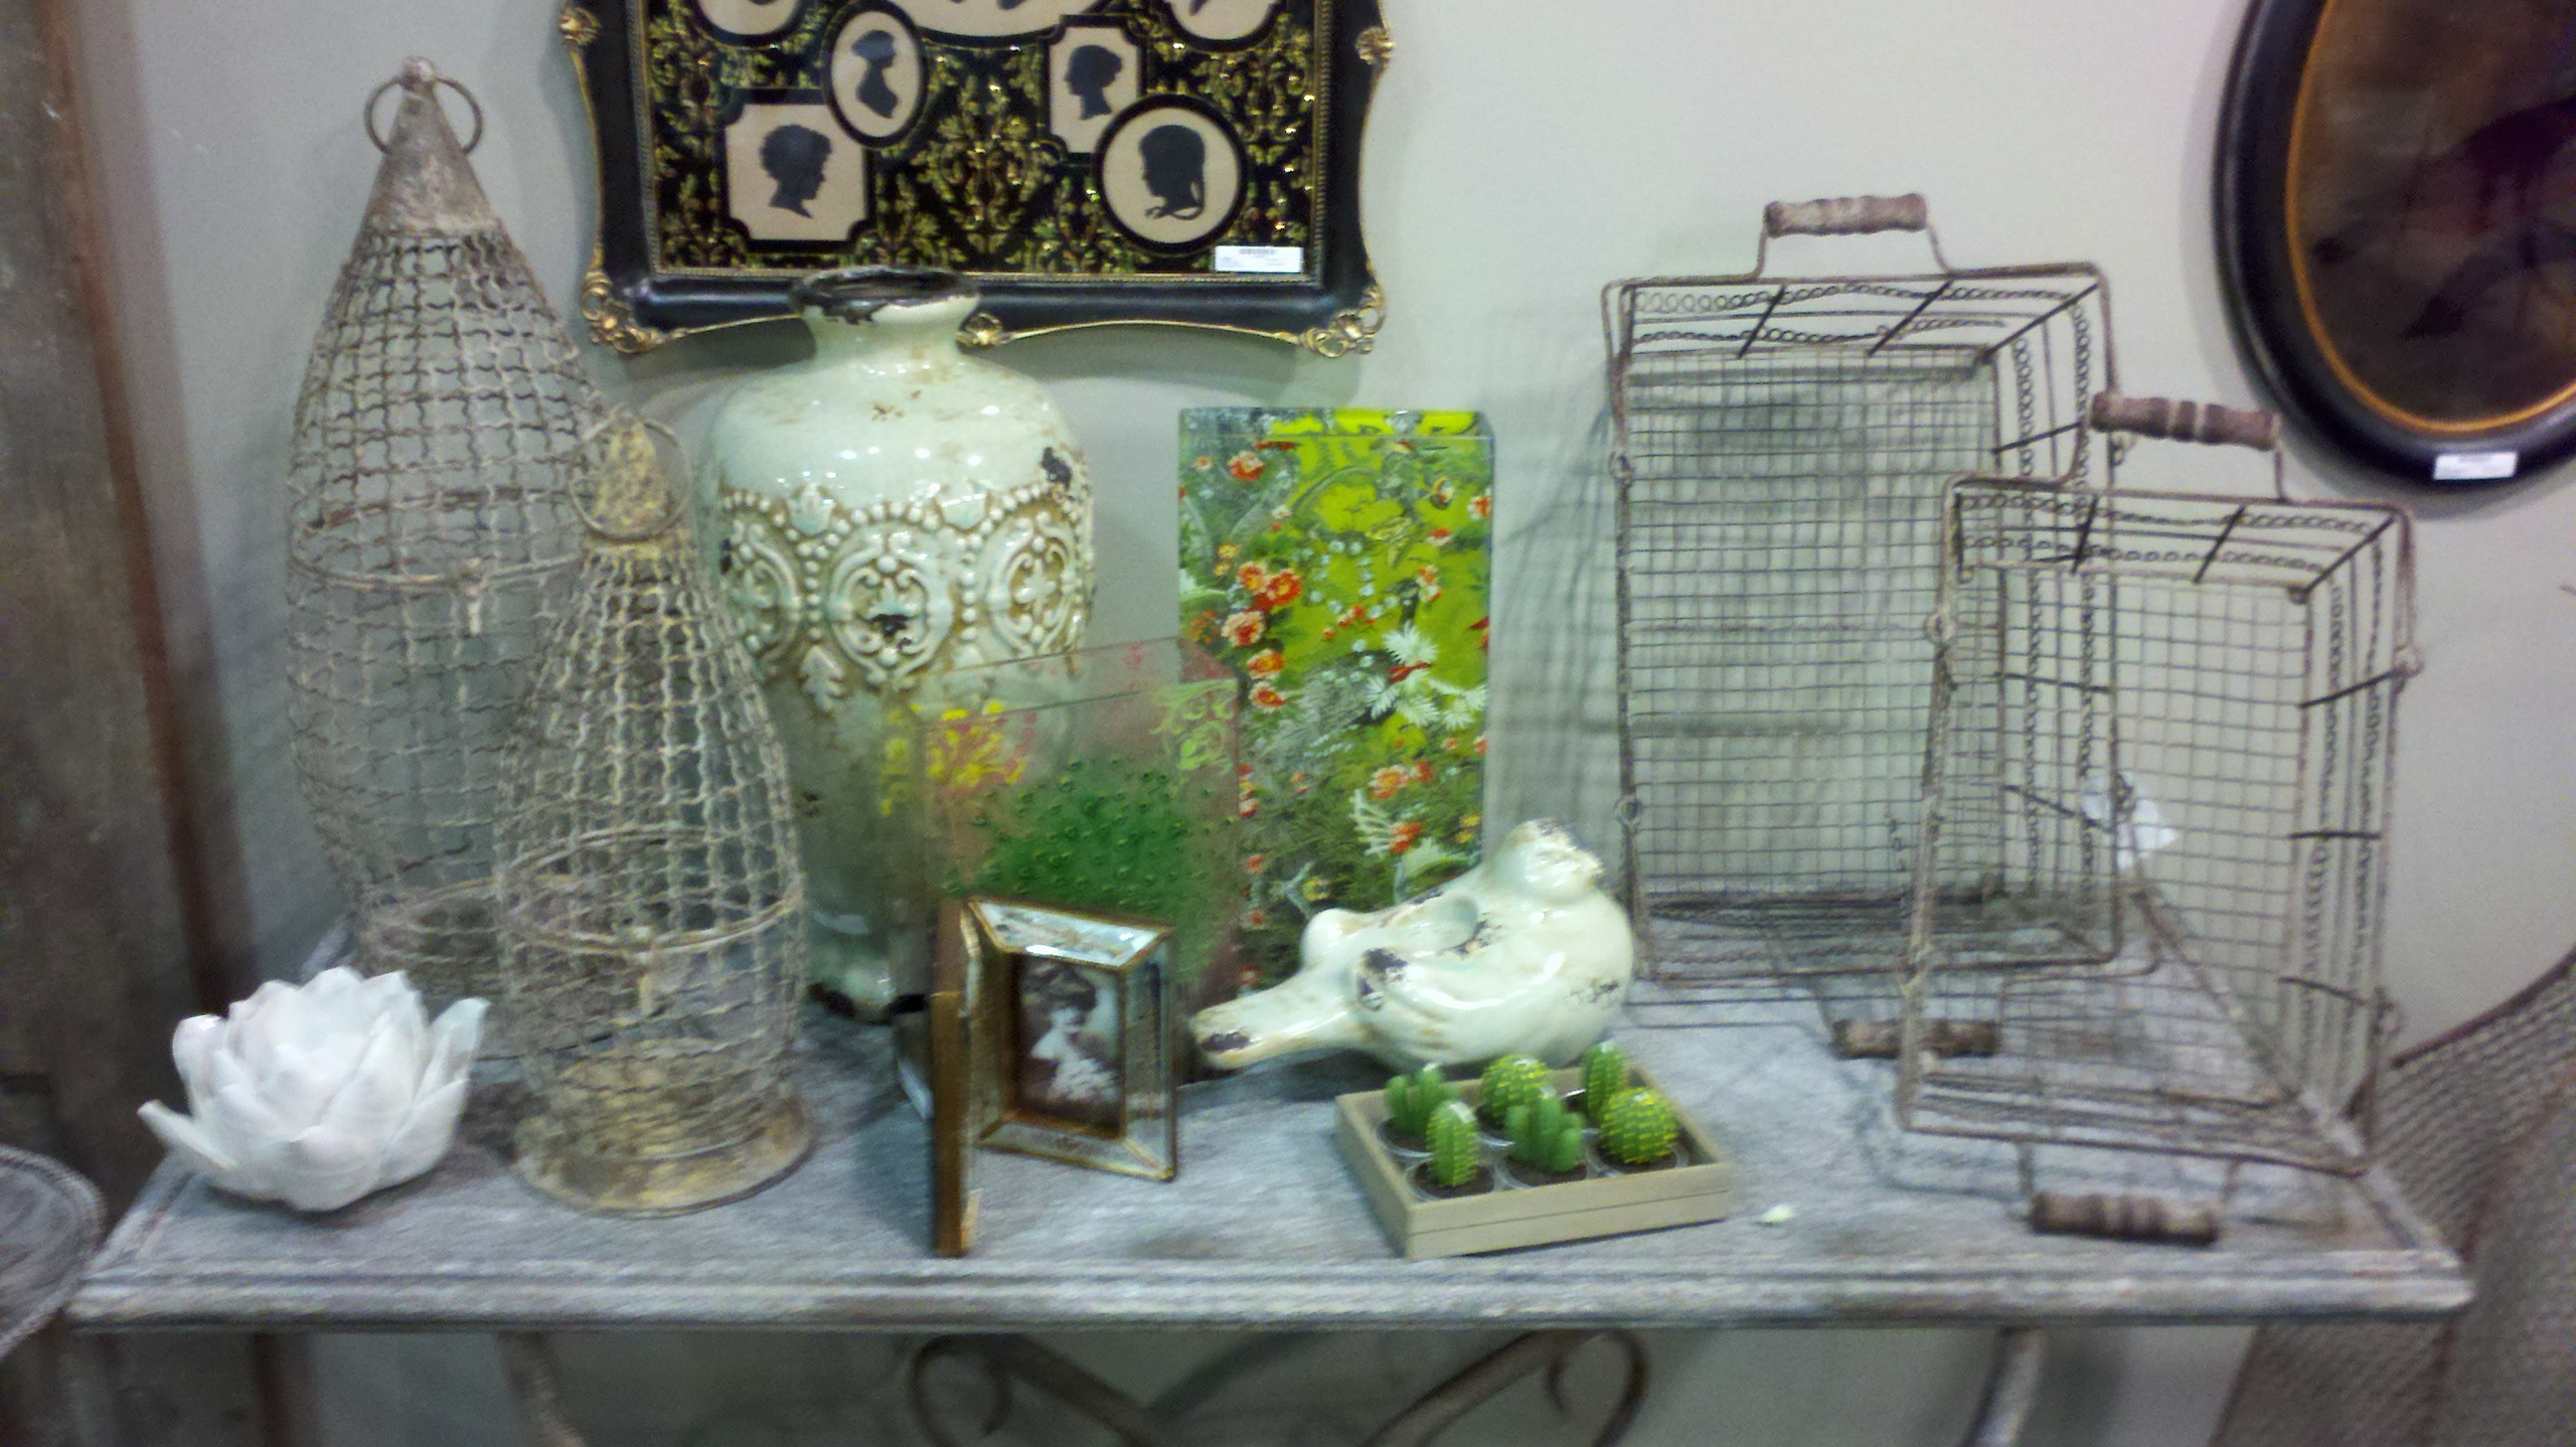 world buyers gift wholesaler - Home Decor Wholesale